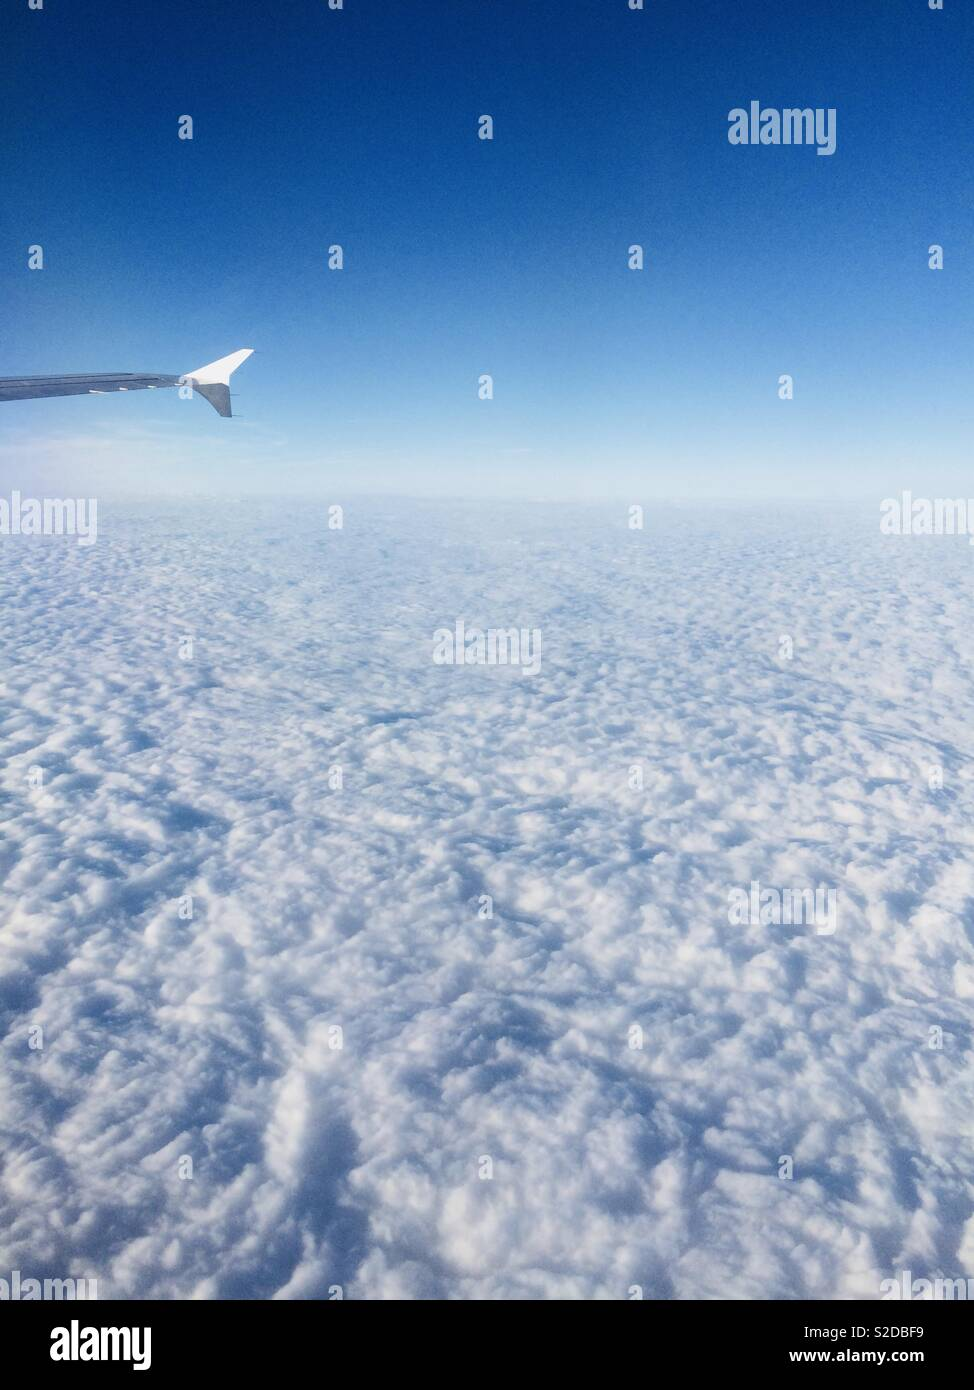 View from an aeroplane window (somewhere above Europe) looking down at the clouds - Stock Image